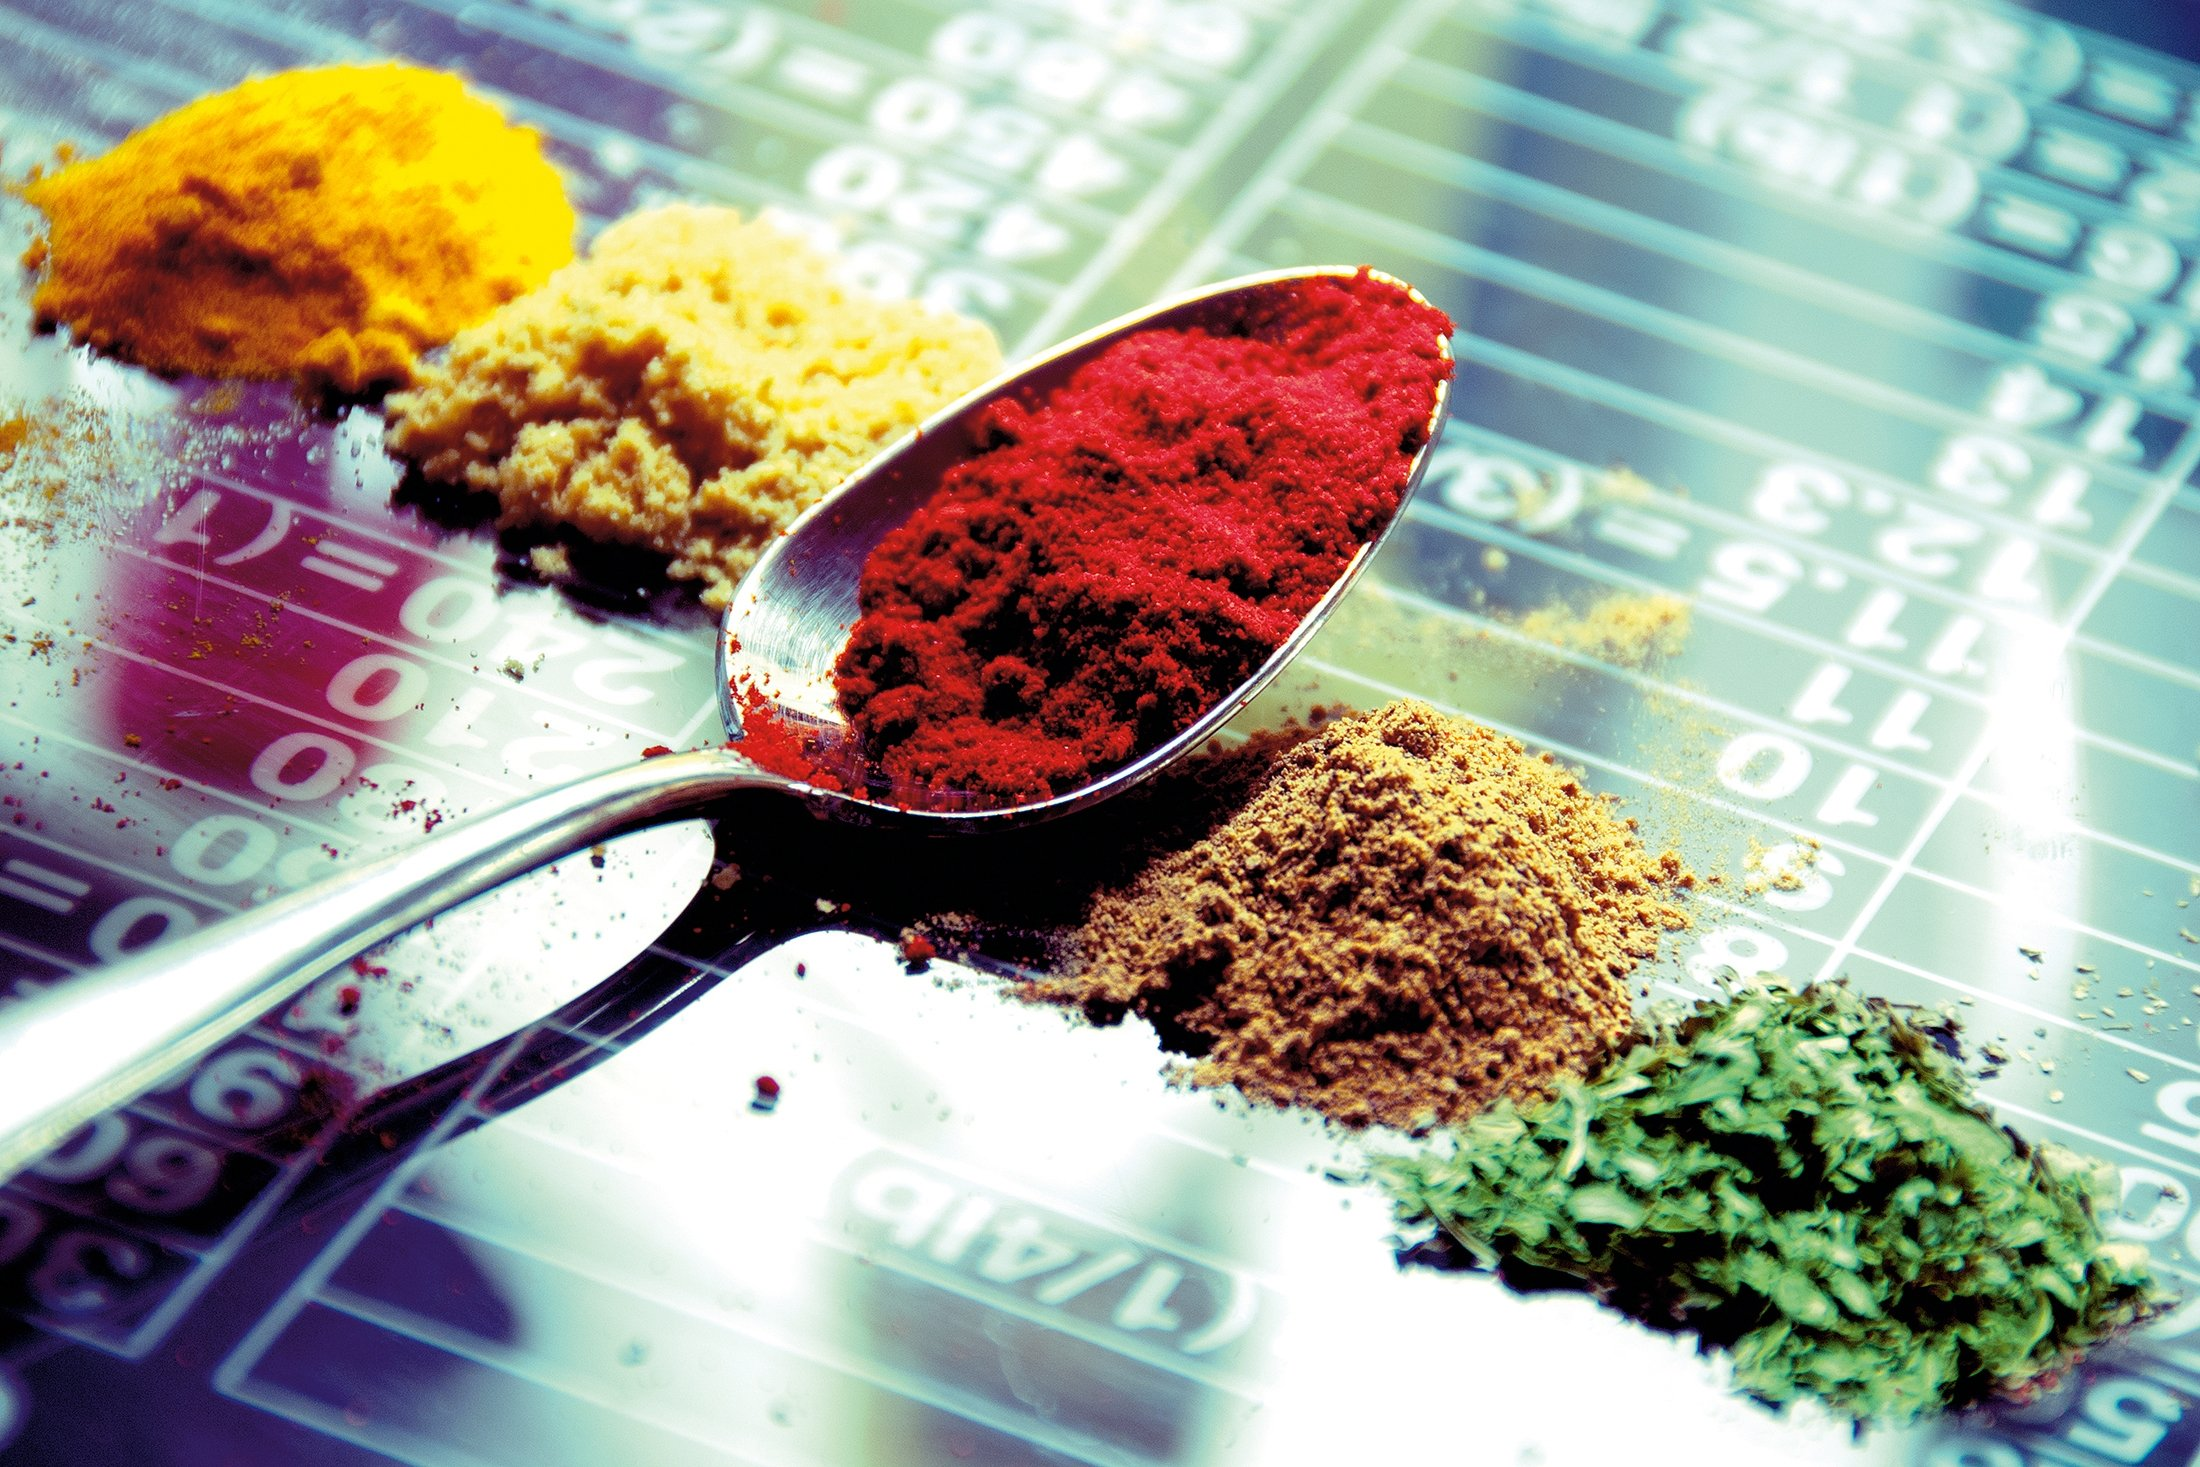 A teaspoon alongside mounds of spices. (Getty Images)